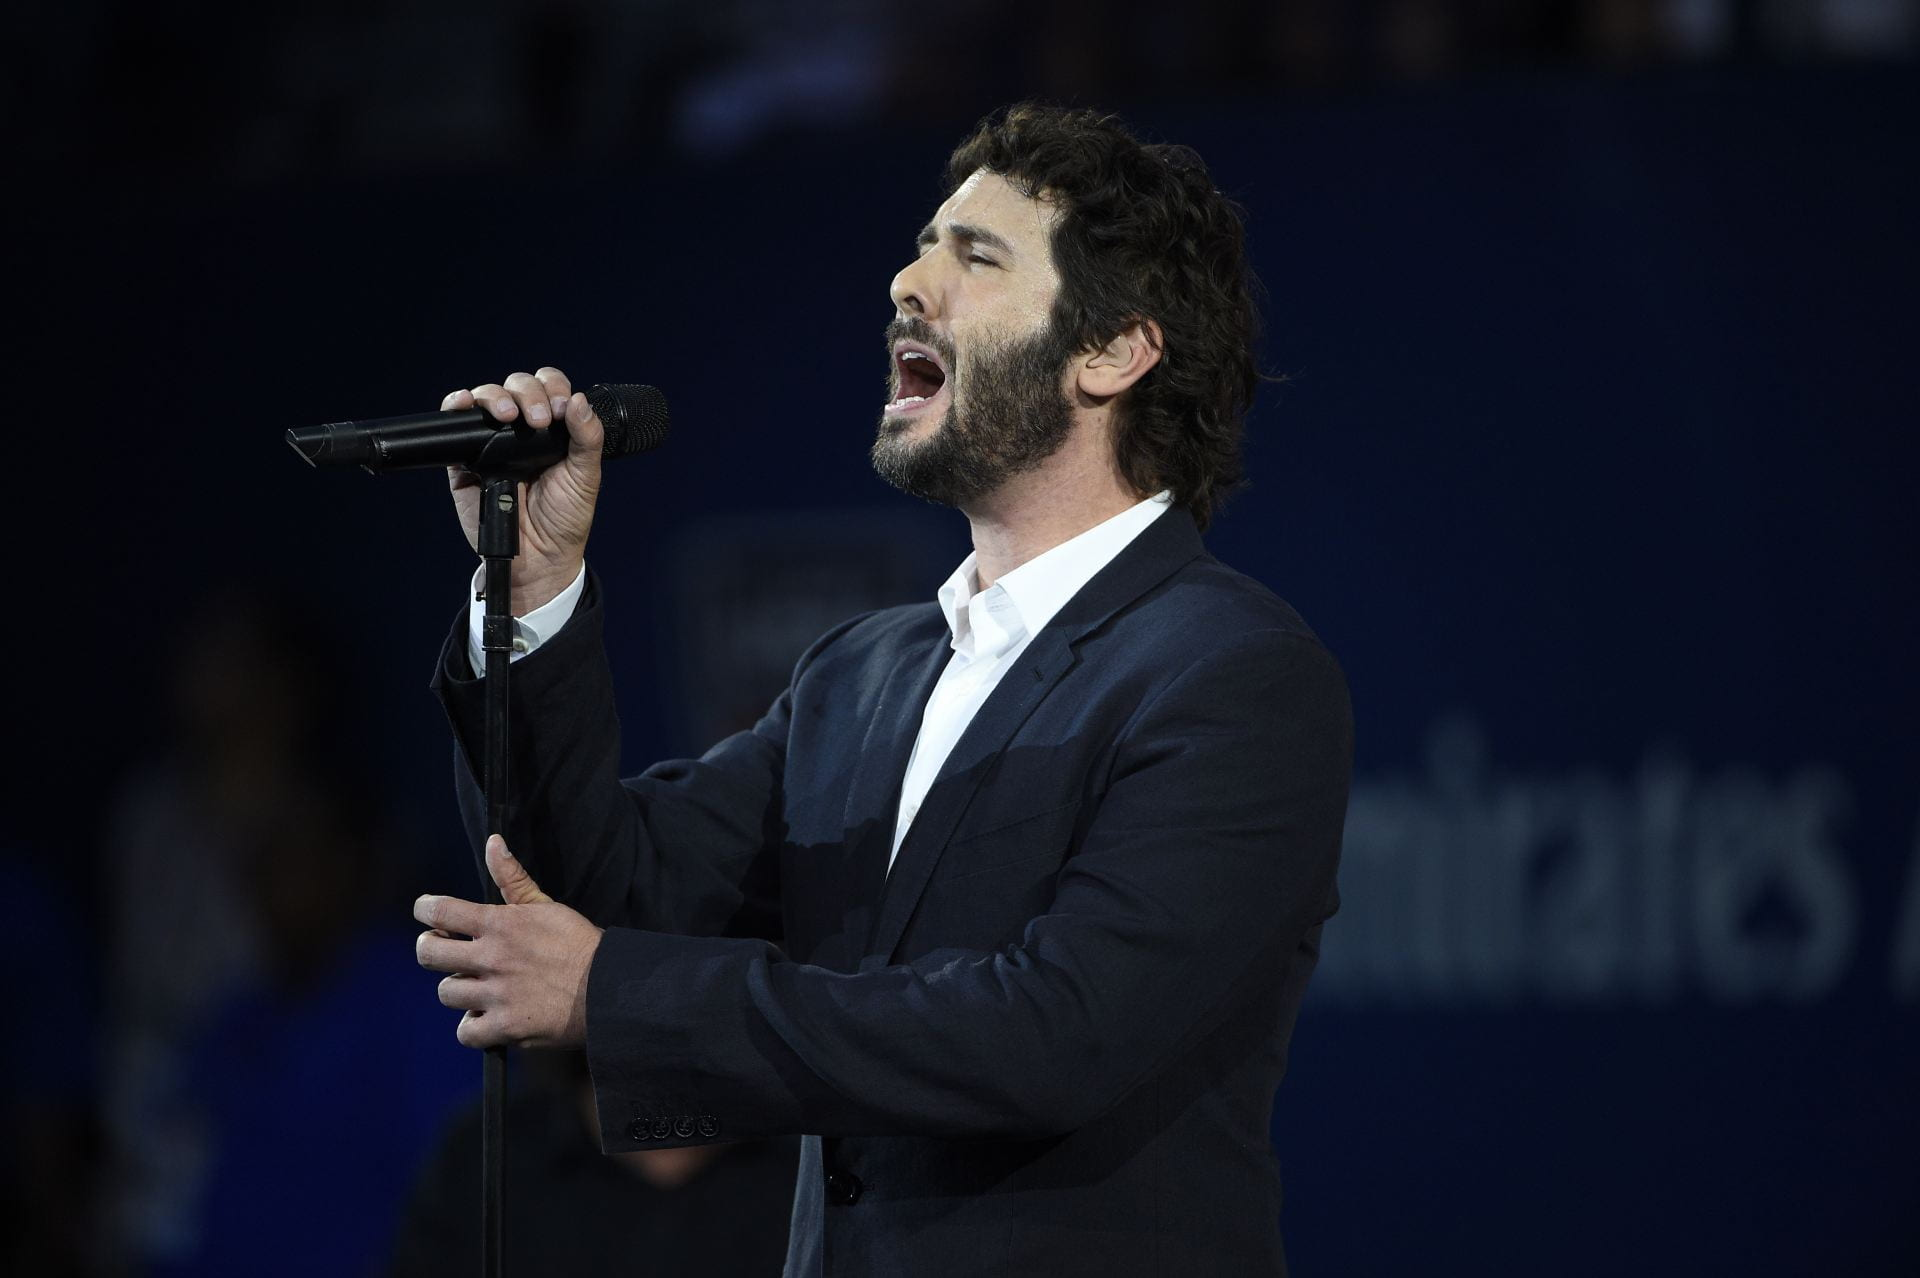 Concert review: Josh Groban brought more than just music to